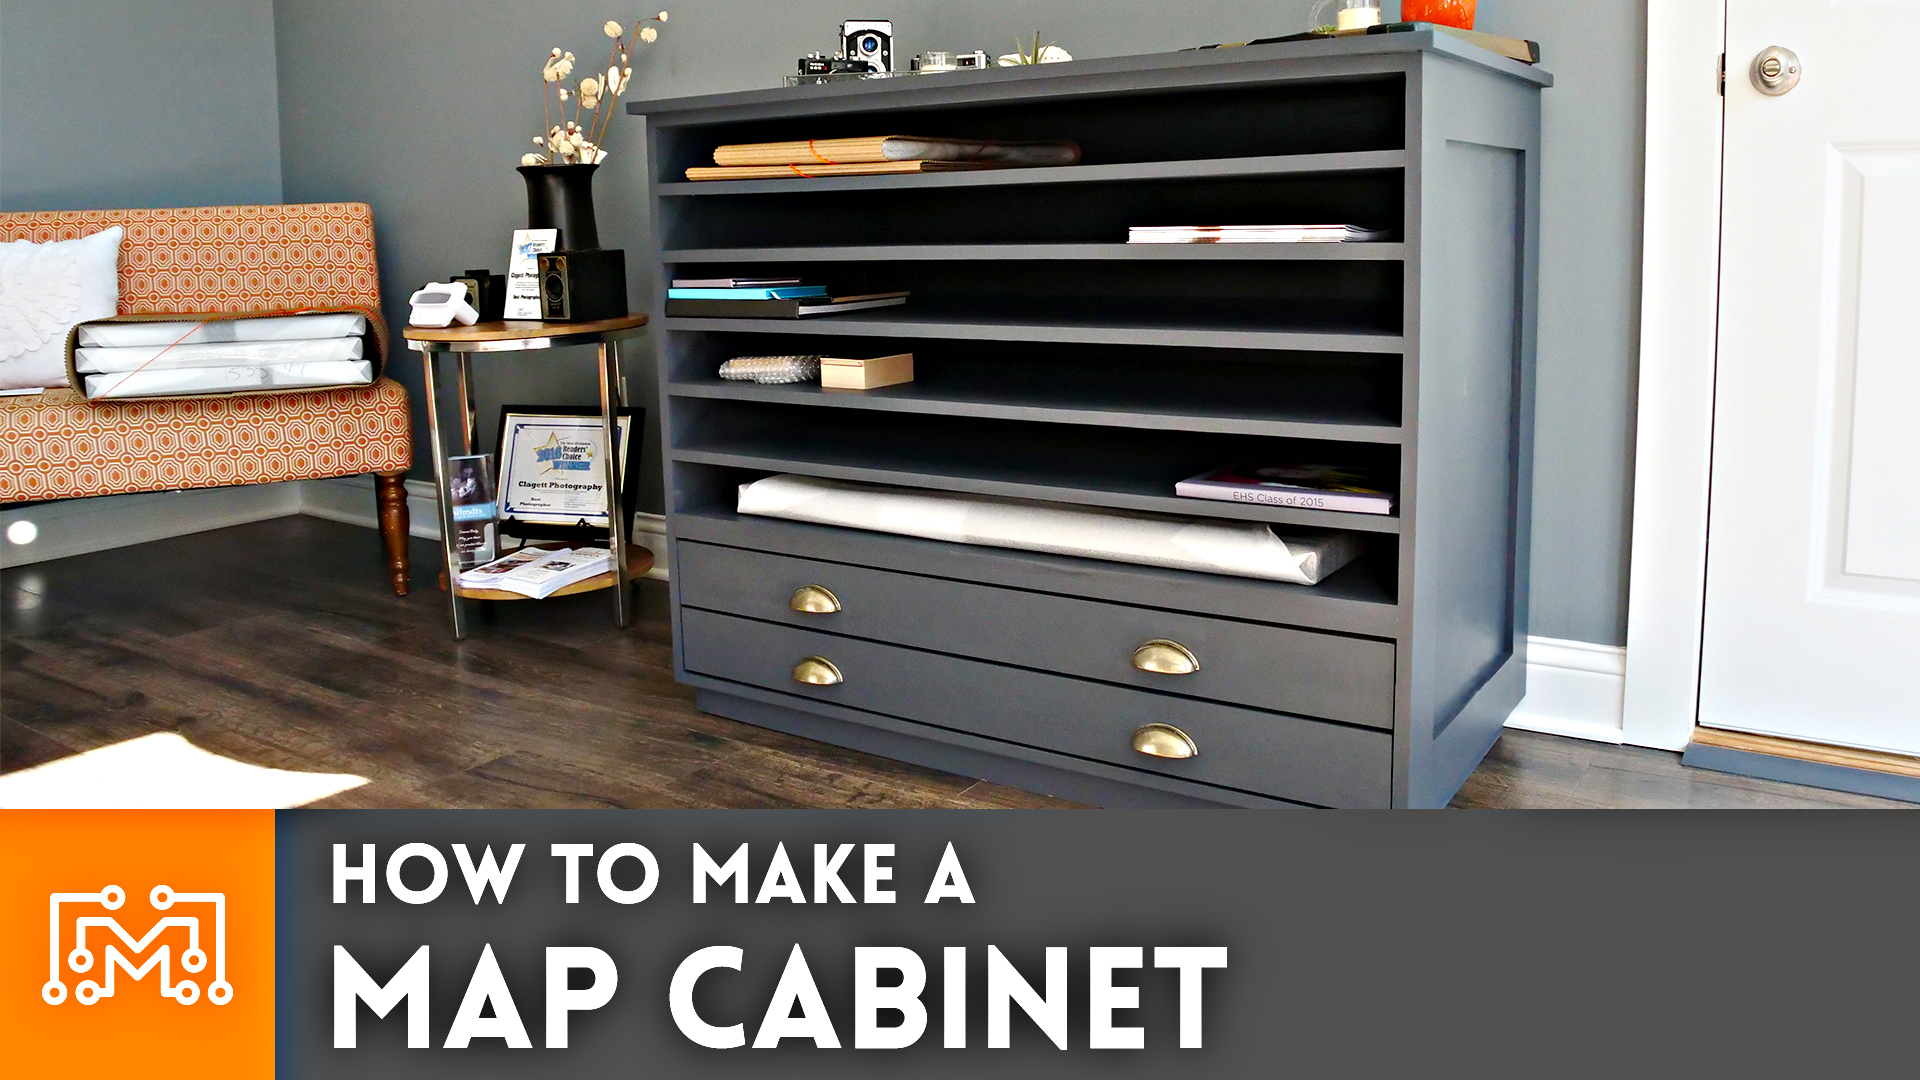 How To Make A Map Cabinet